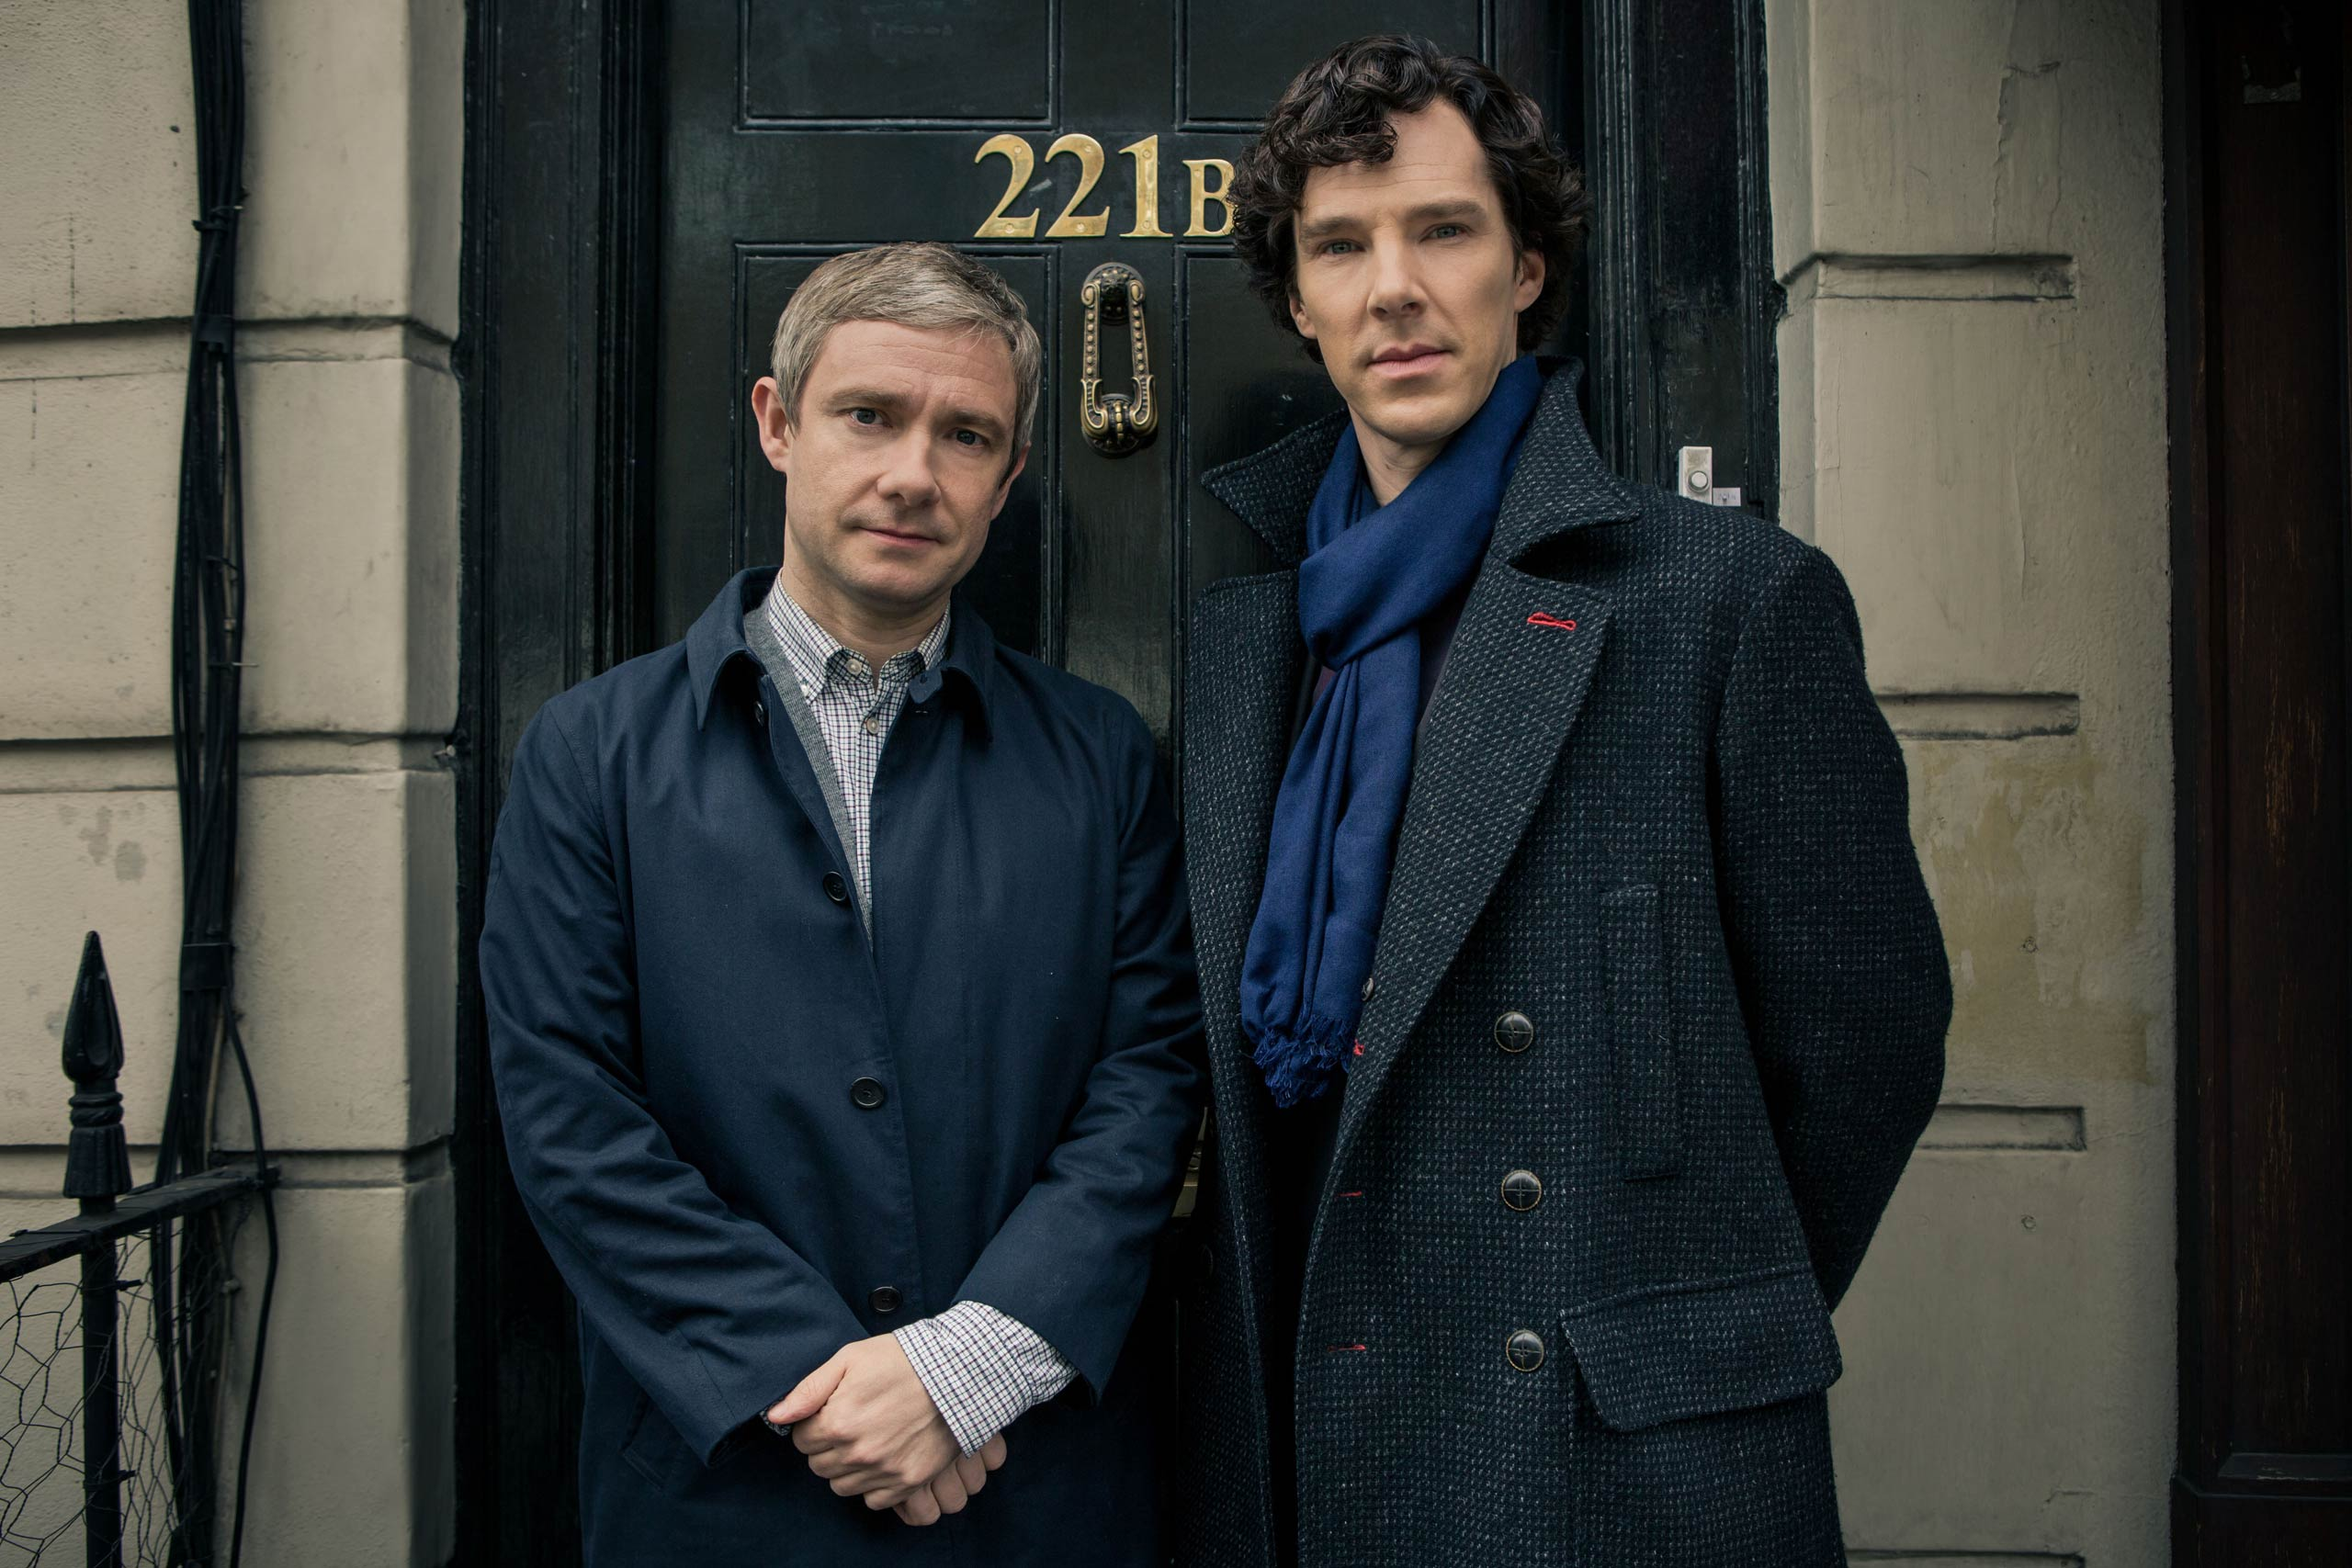 Sherlock Season 3Sundays January 19 - February 2, 201410pm ET on MASTERPIECE on PBSSherlock Holmes stalks again in a third season of the hit modern version of the Arthur Conan Doyle classic, starring Benedict Cumberbatch (War Horse) as the go-to consulting detective in 21st-century London and Martin Freeman (The Hobbit) as his loyal friend, Dr. John Watson.Shown from left to right: Martin Freeman as Dr. John Watson and Benedict Cumberbatch as Sherlock Holmes(C)Robert Viglasky/Hartswood Films for MASTERPIECEThis image may be used only in the direct promotion of MASTERPIECE. No other rights are granted. All rights are reserved. Editorial use only.